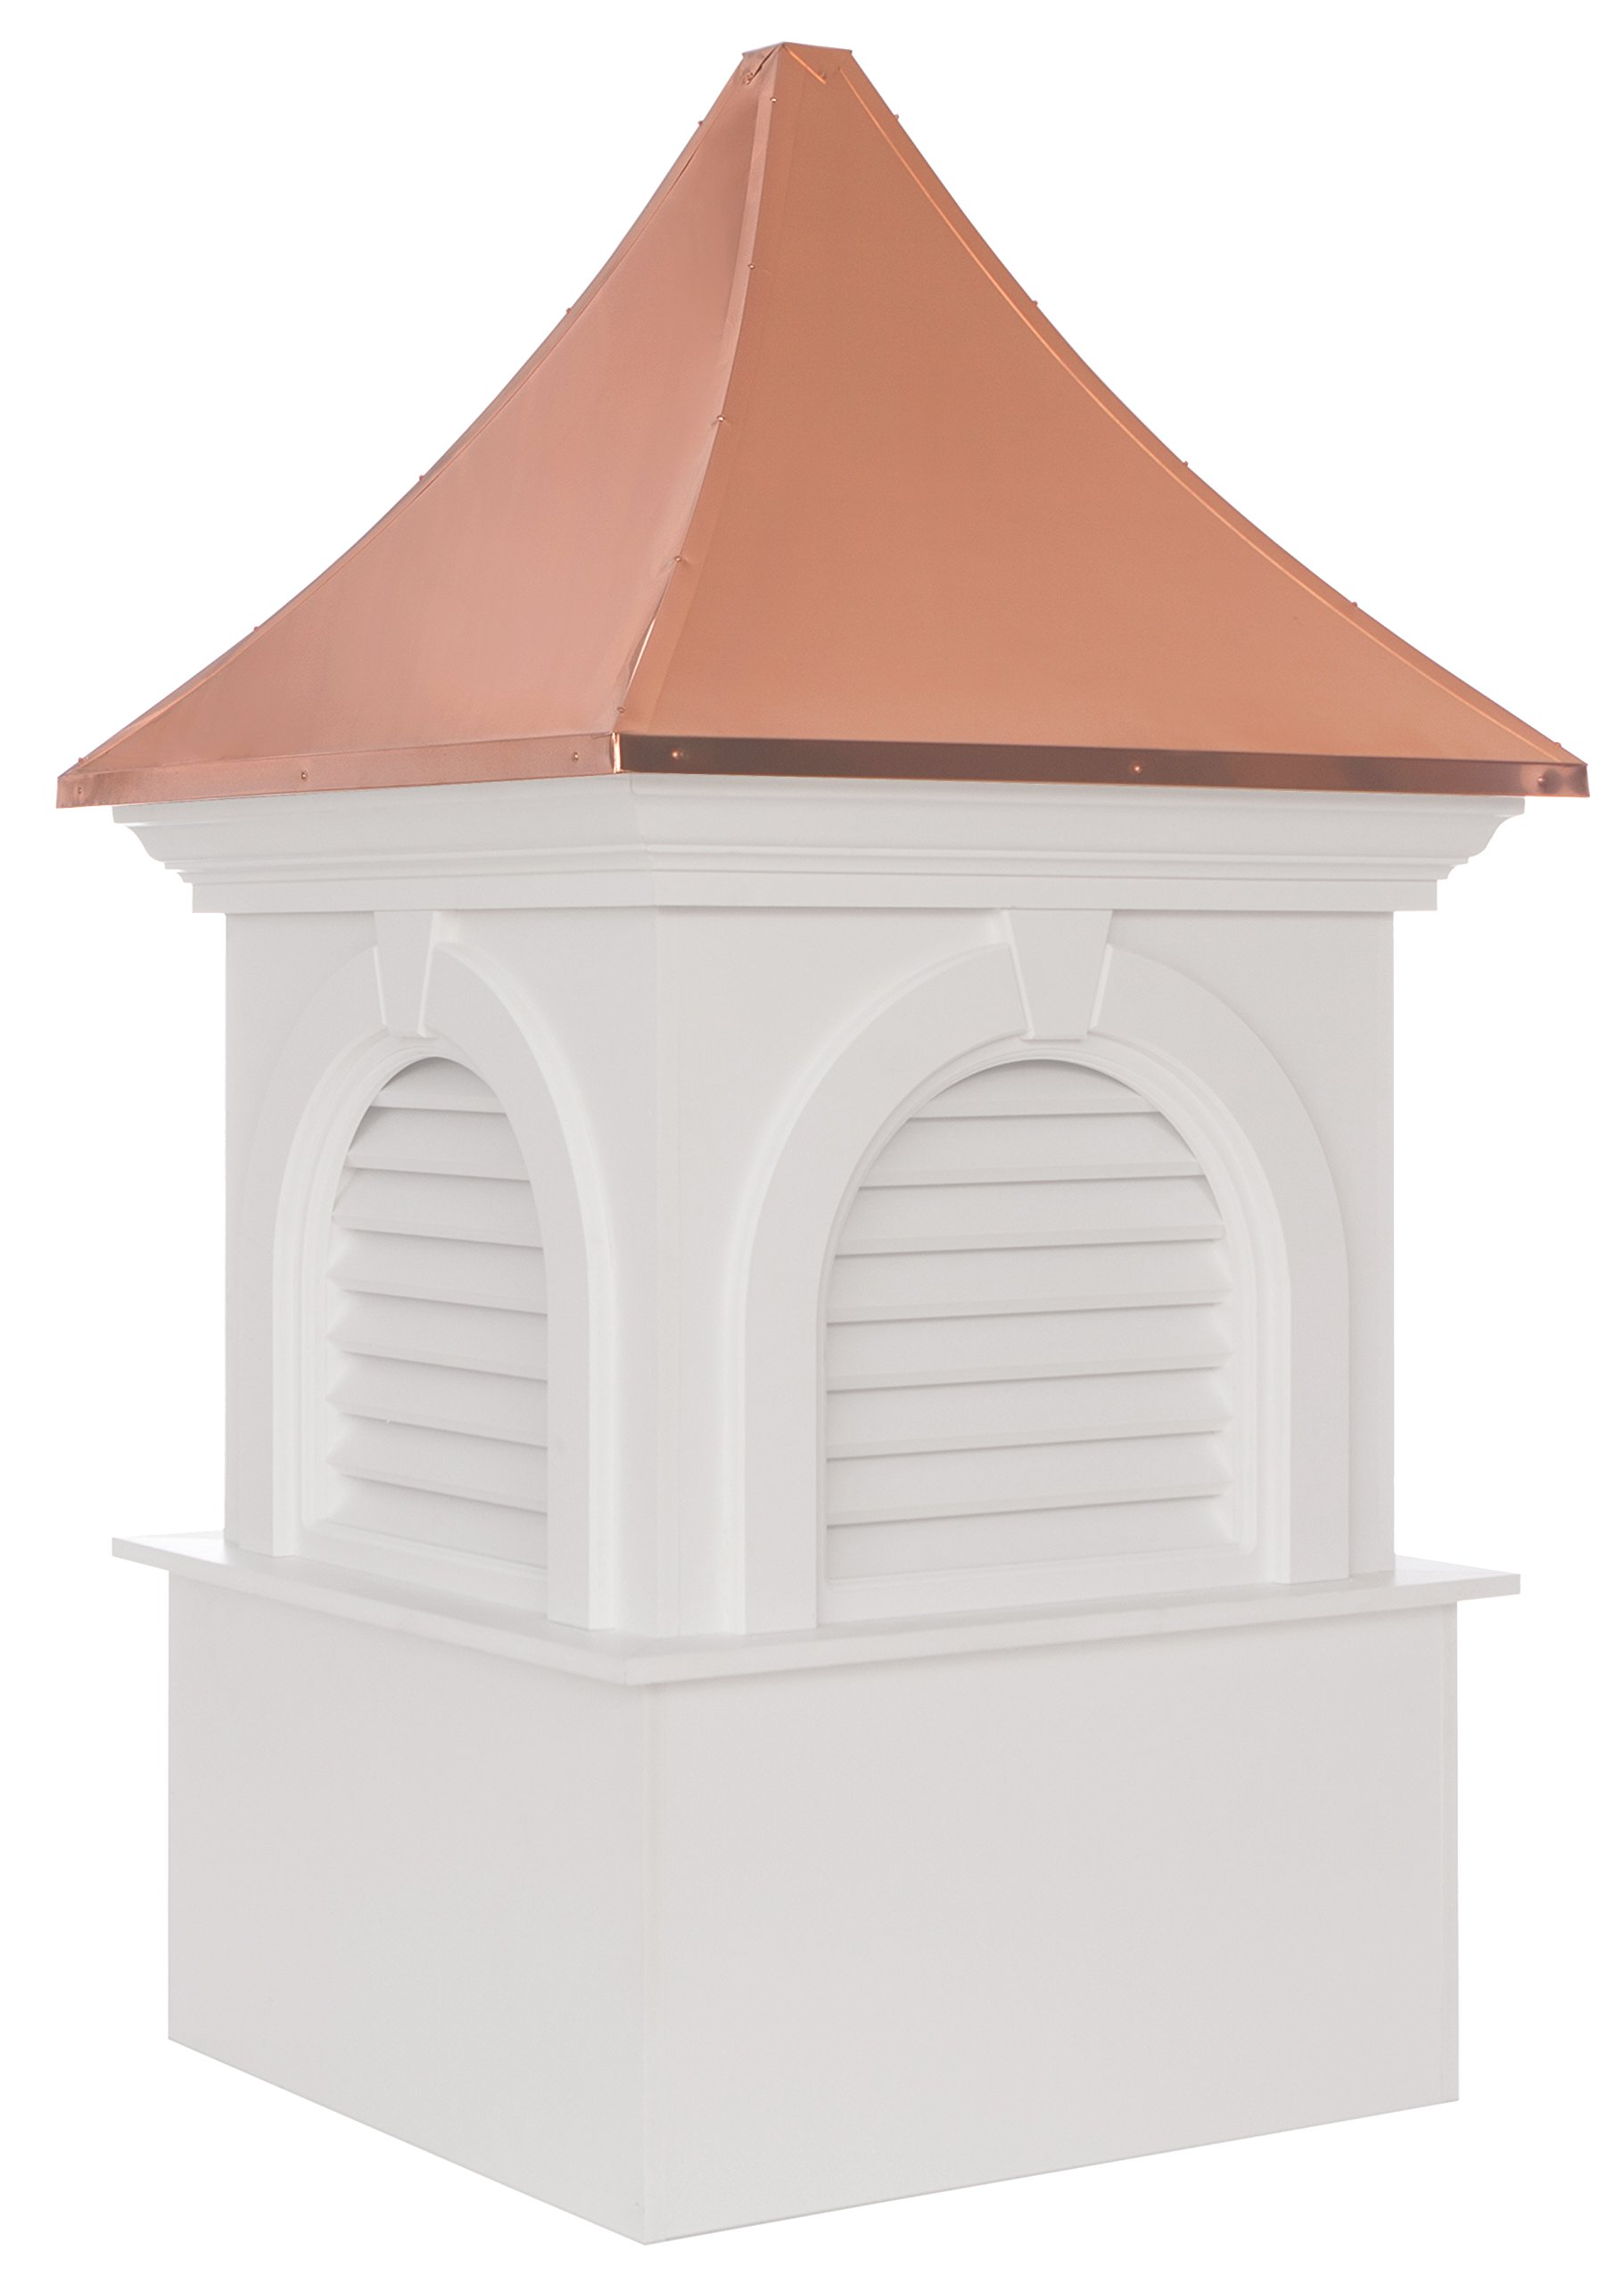 Smithsonian Newington Vinyl Cupola with Copper Roof 48'' x 80'' by Good Directions